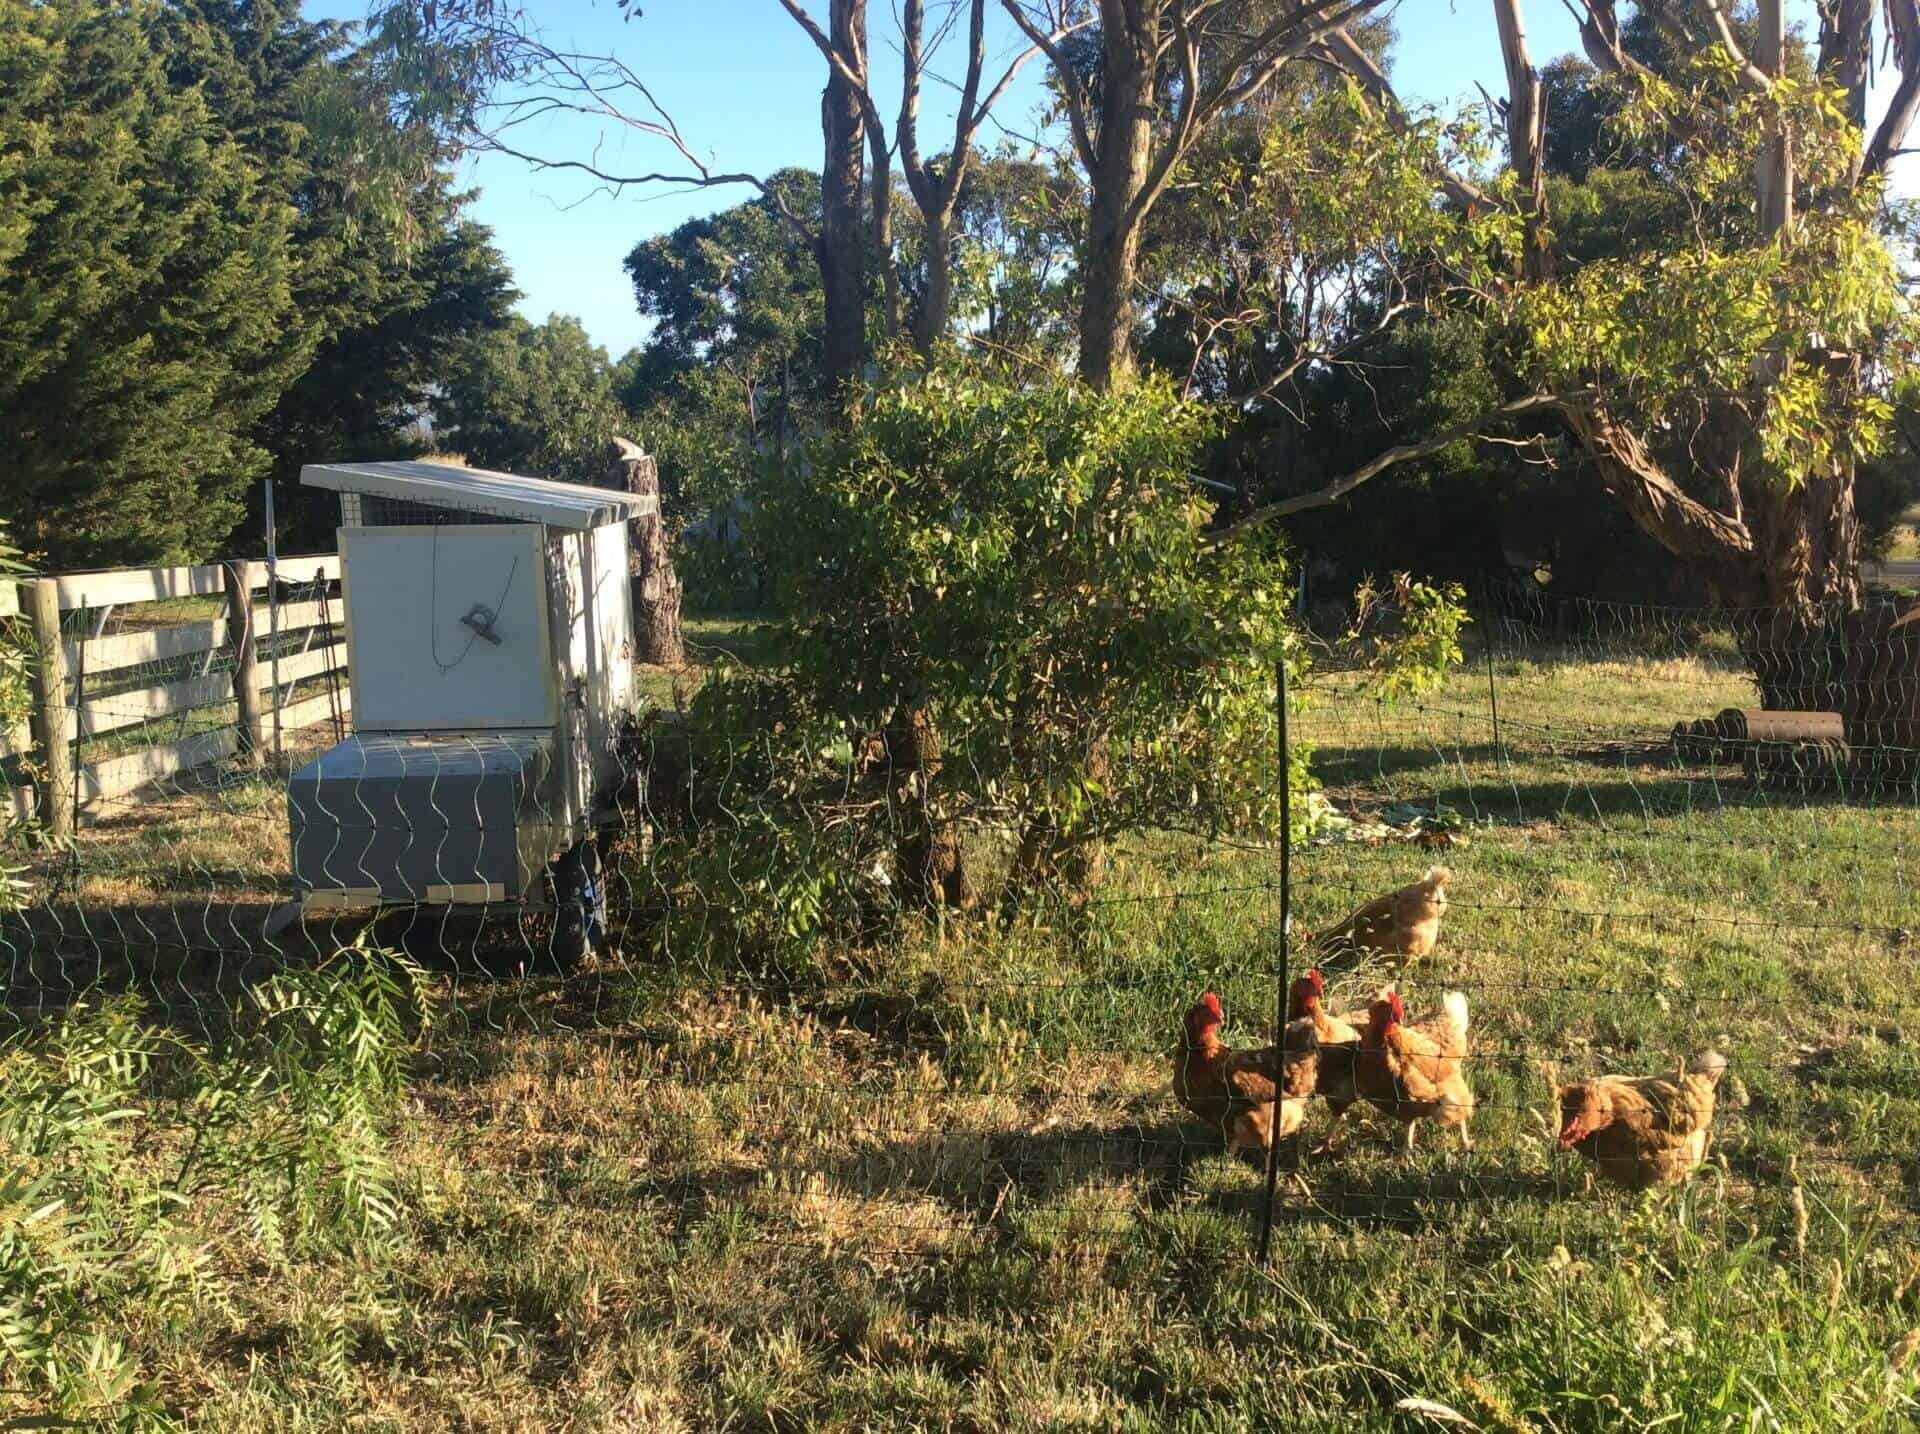 Free range chickens enjoying their portable chicken shed from Moriac, Victoria